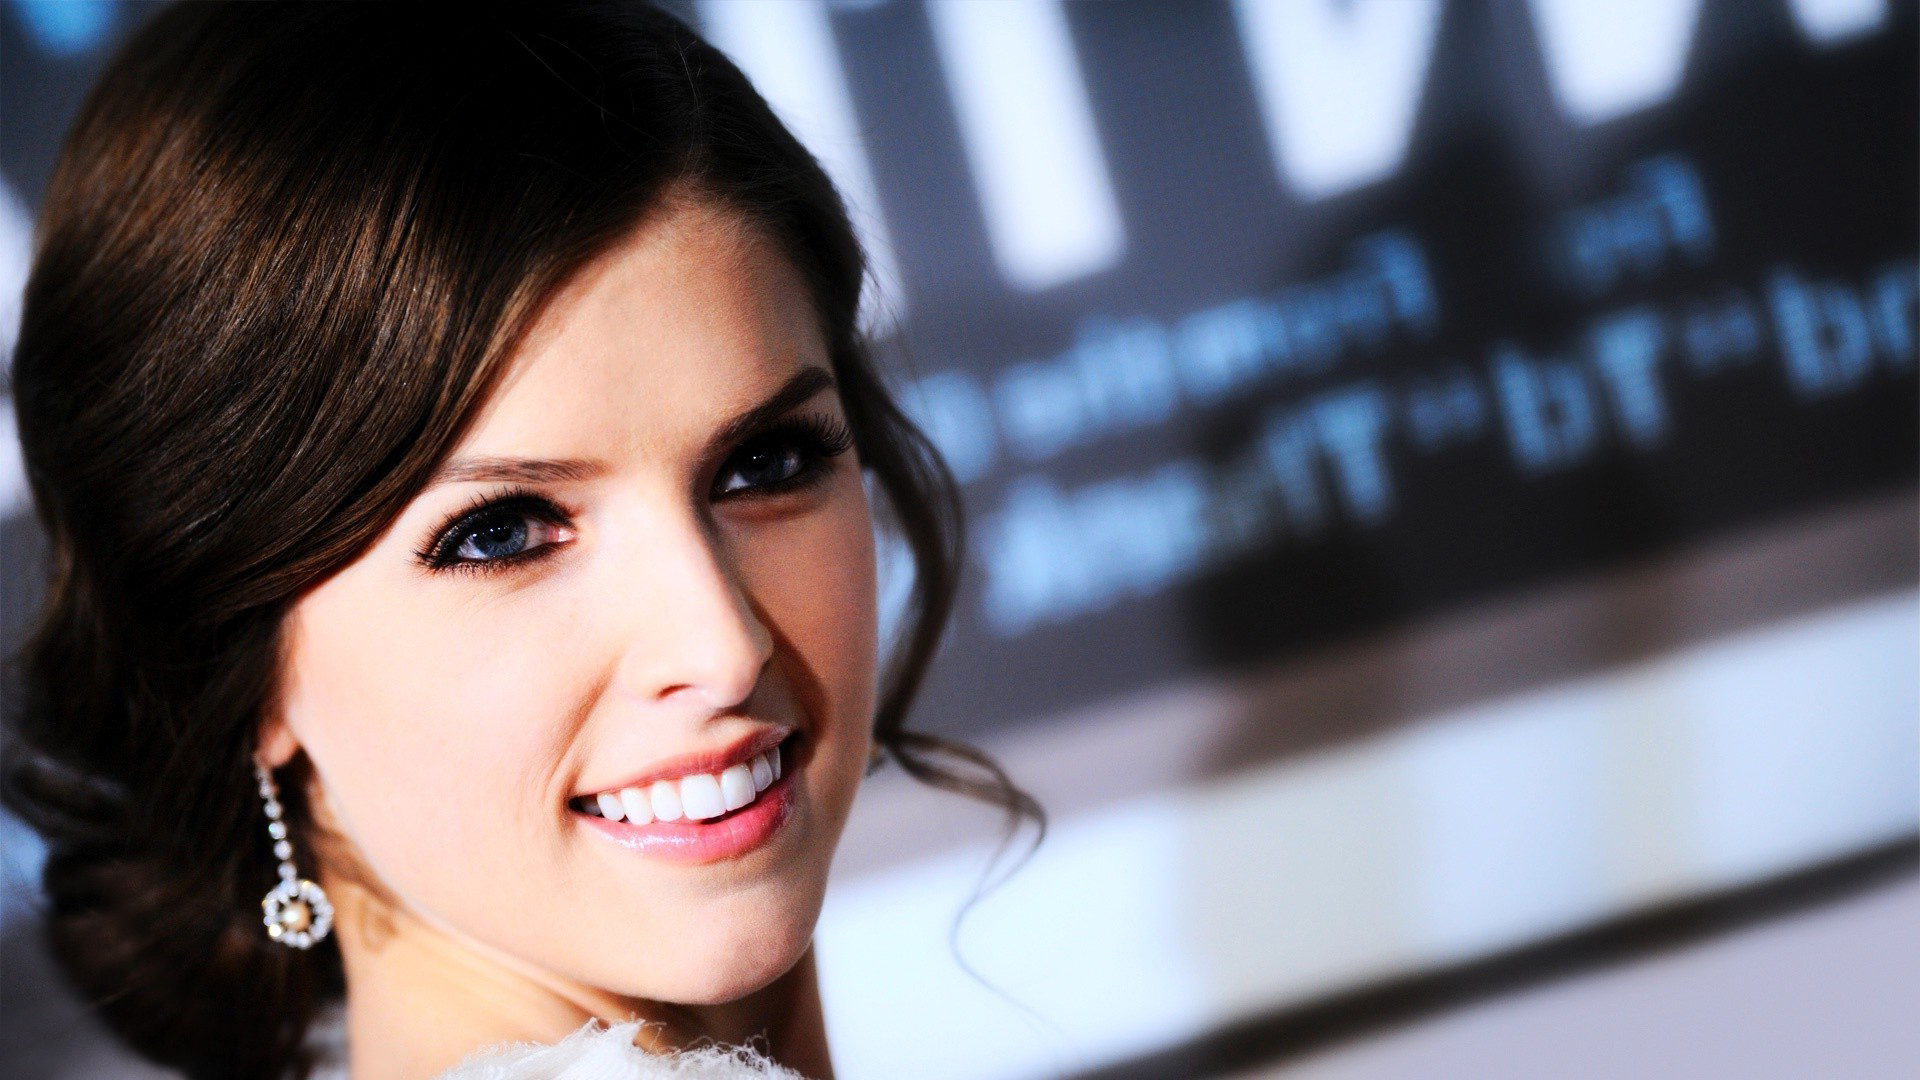 Anna-Kendrick-Desktop-1920%C3%97-Anna-Kendrick-Adorable-Wallpa-wallpaper-wp3602605